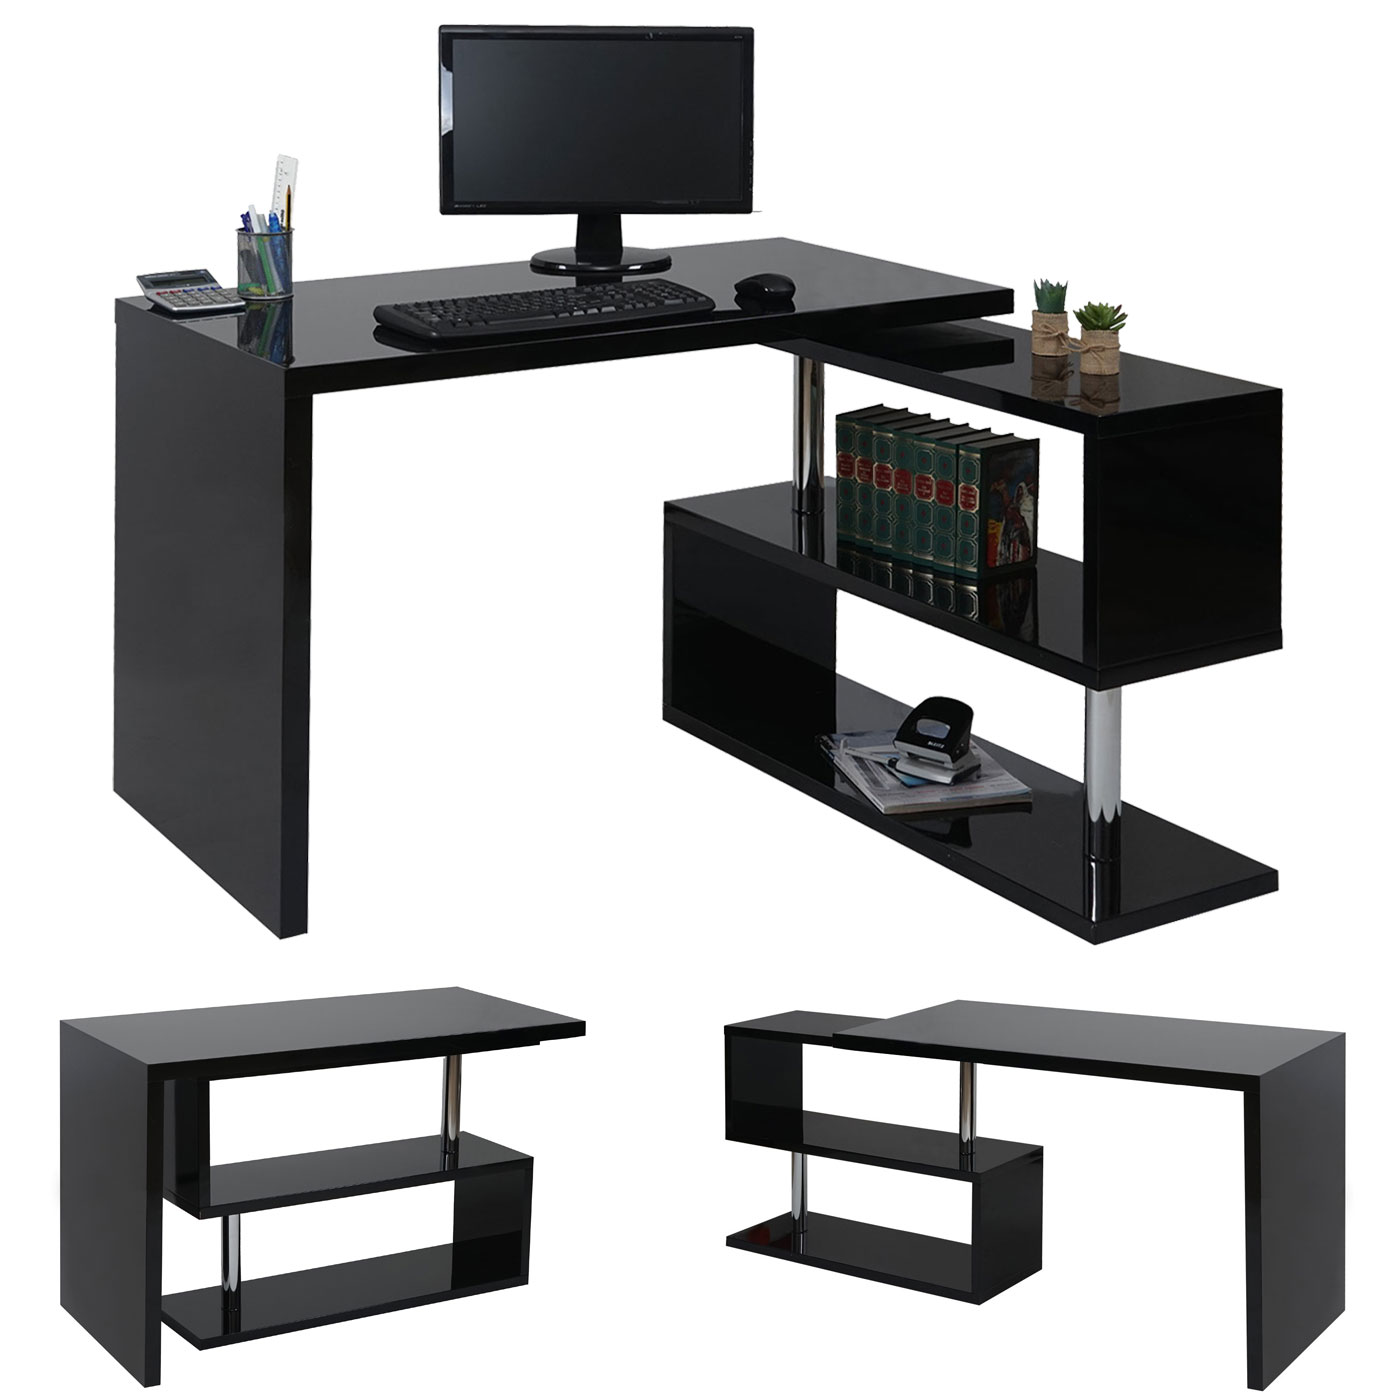 design eckschreibtisch hwc a68 b rotisch schreibtisch hochglanz drehbar 120x60cm schwarz. Black Bedroom Furniture Sets. Home Design Ideas